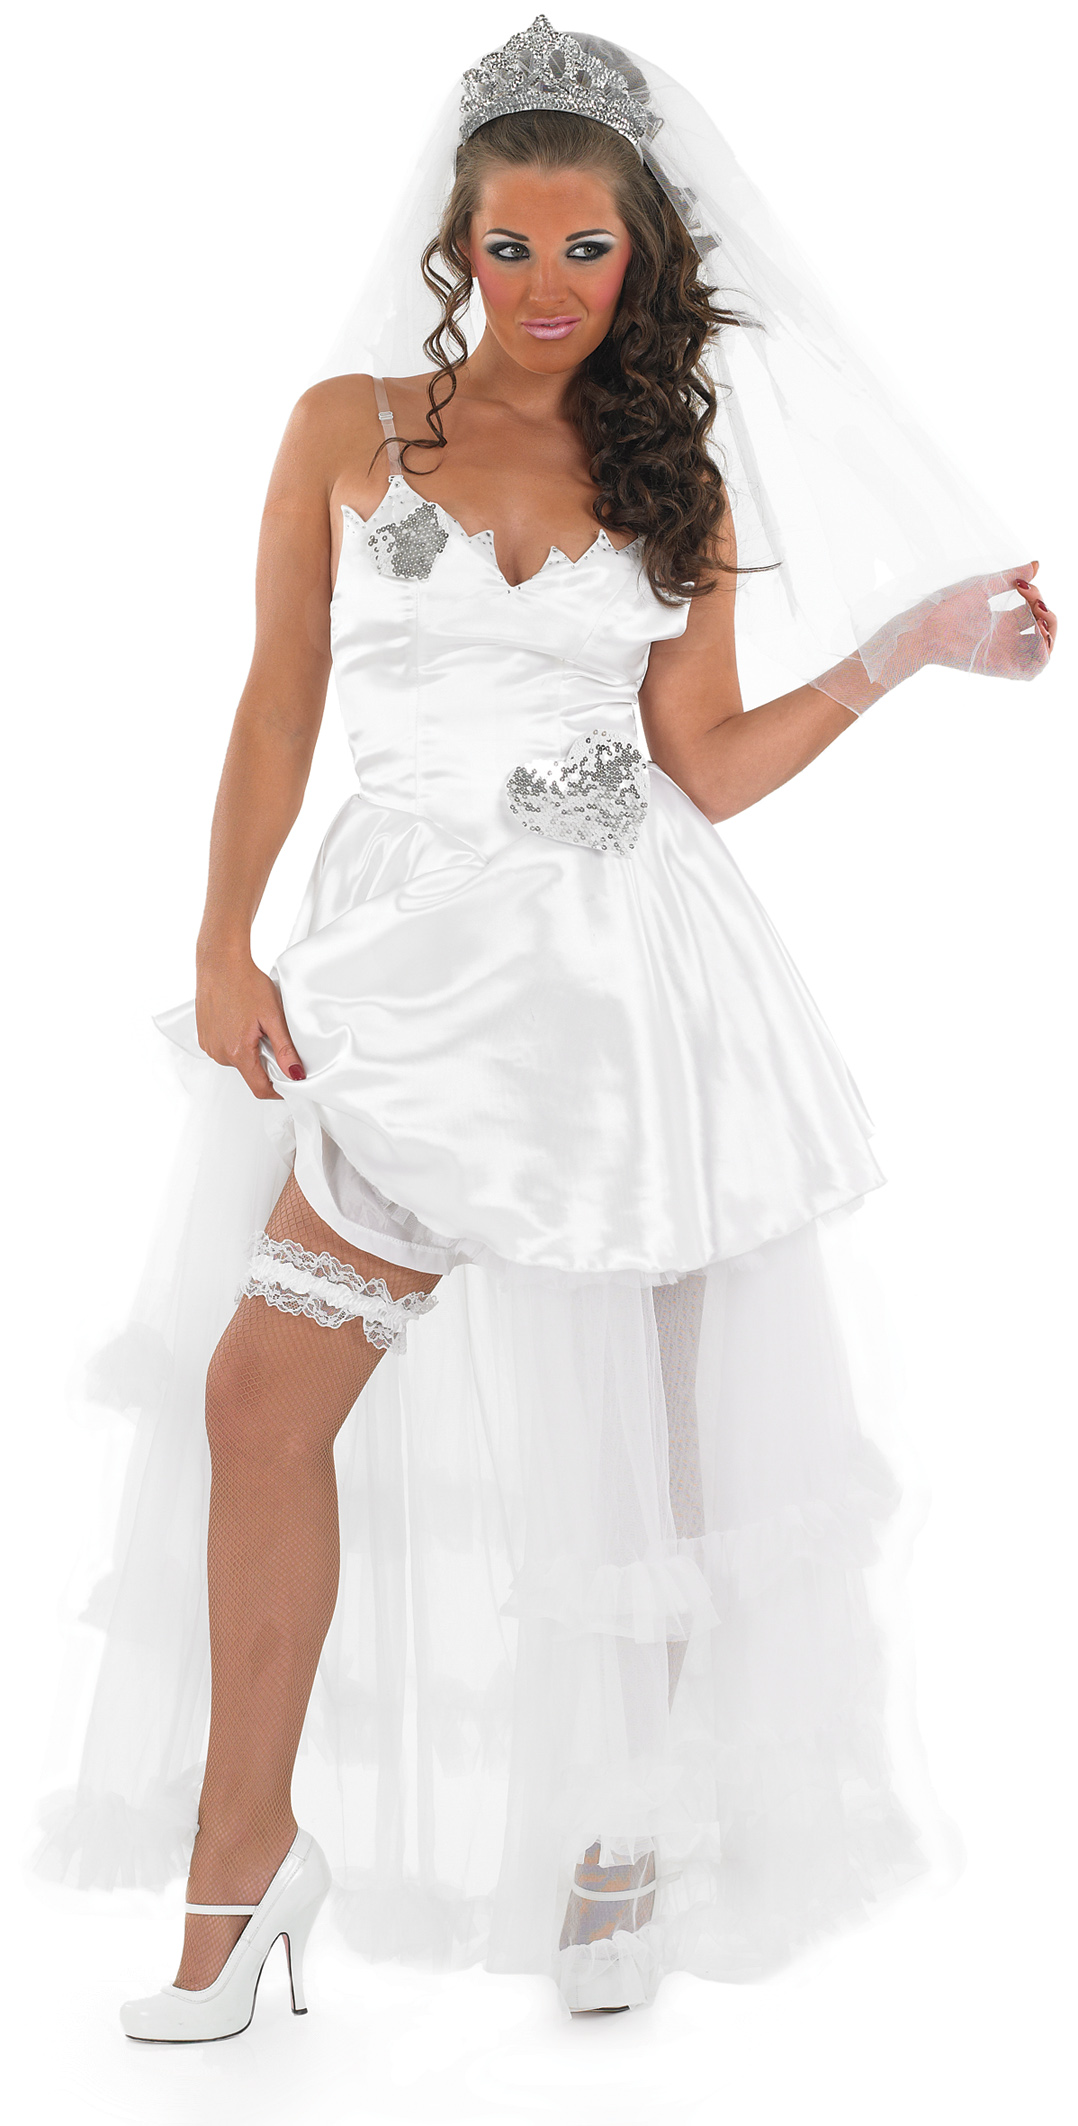 Gypsy White Wedding Costume